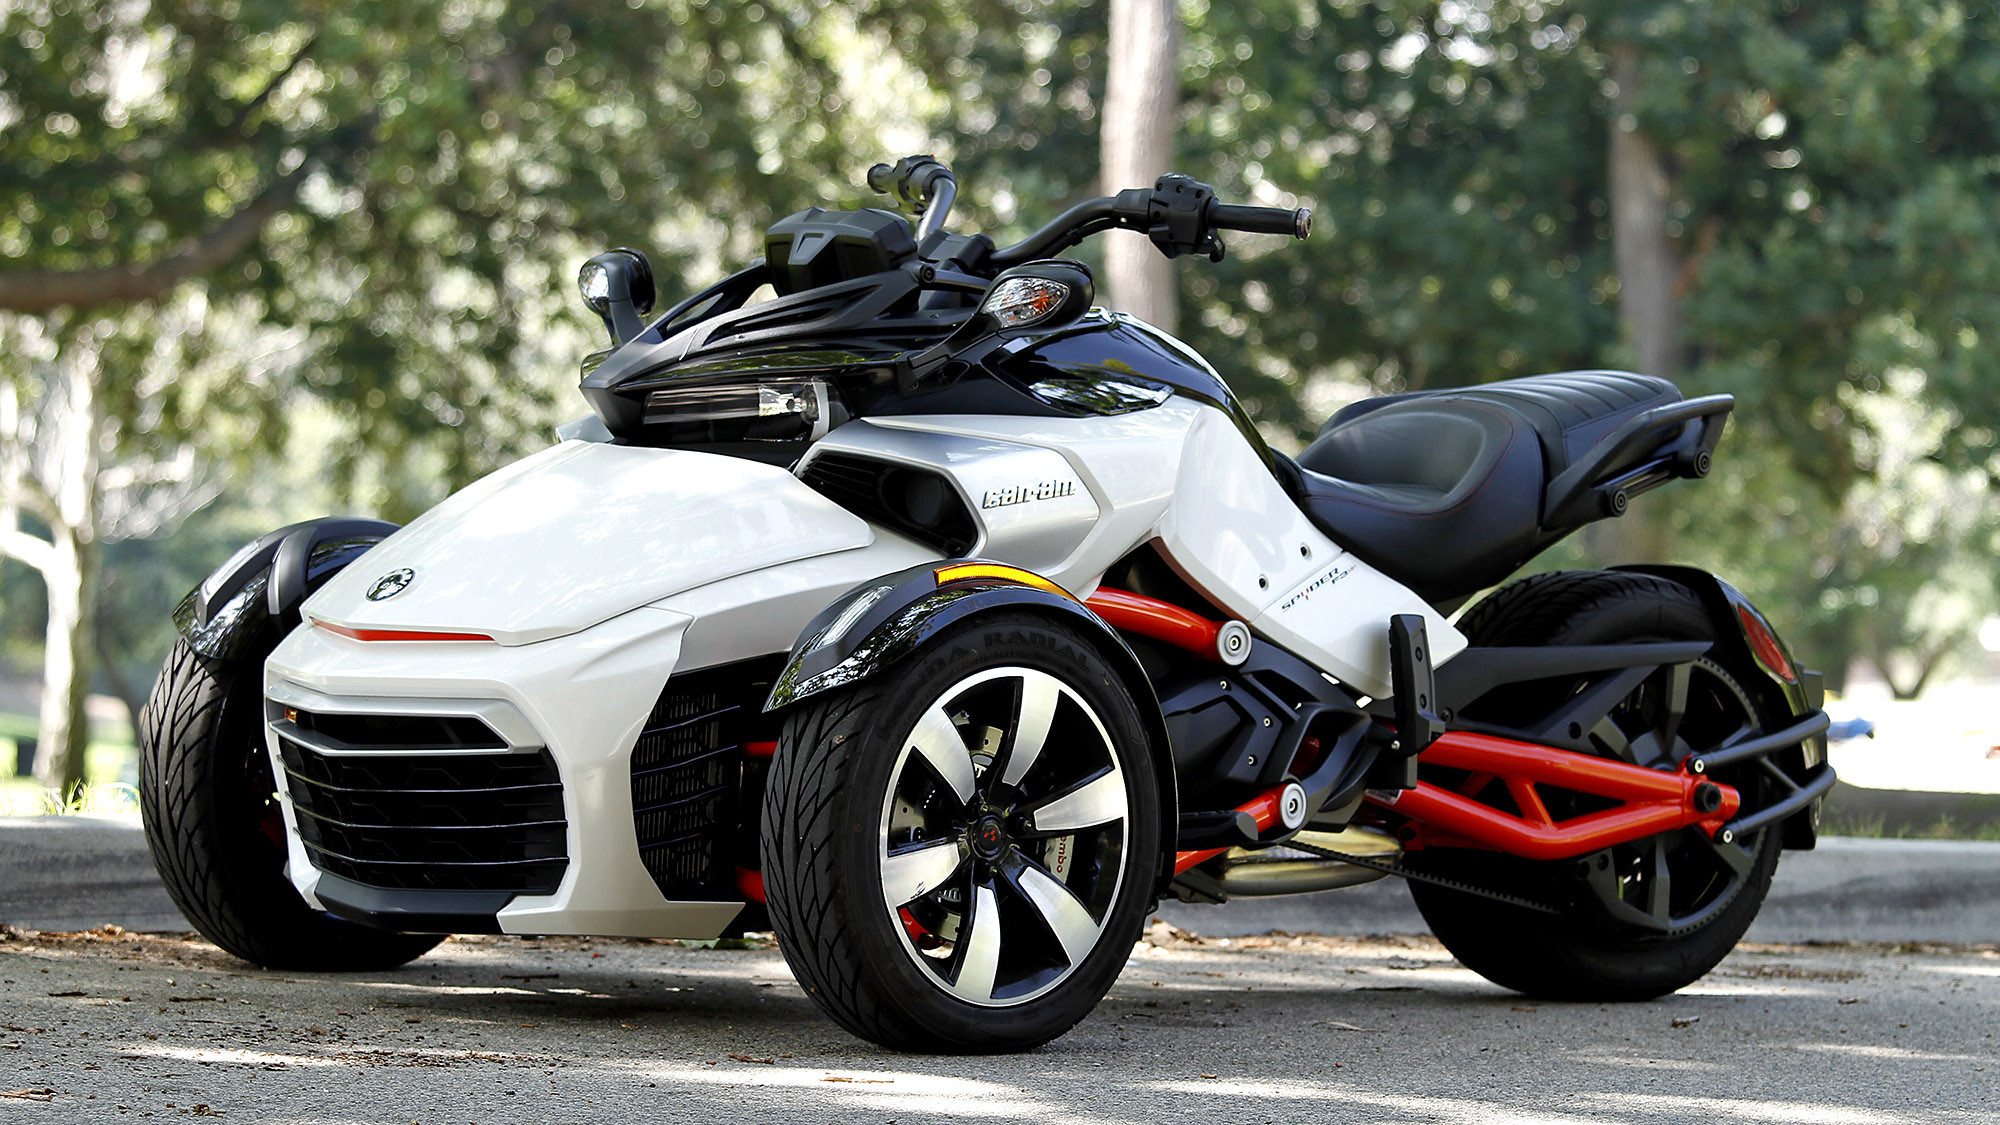 Can Am Spyder review Newbies may dig it serious bikers not so much